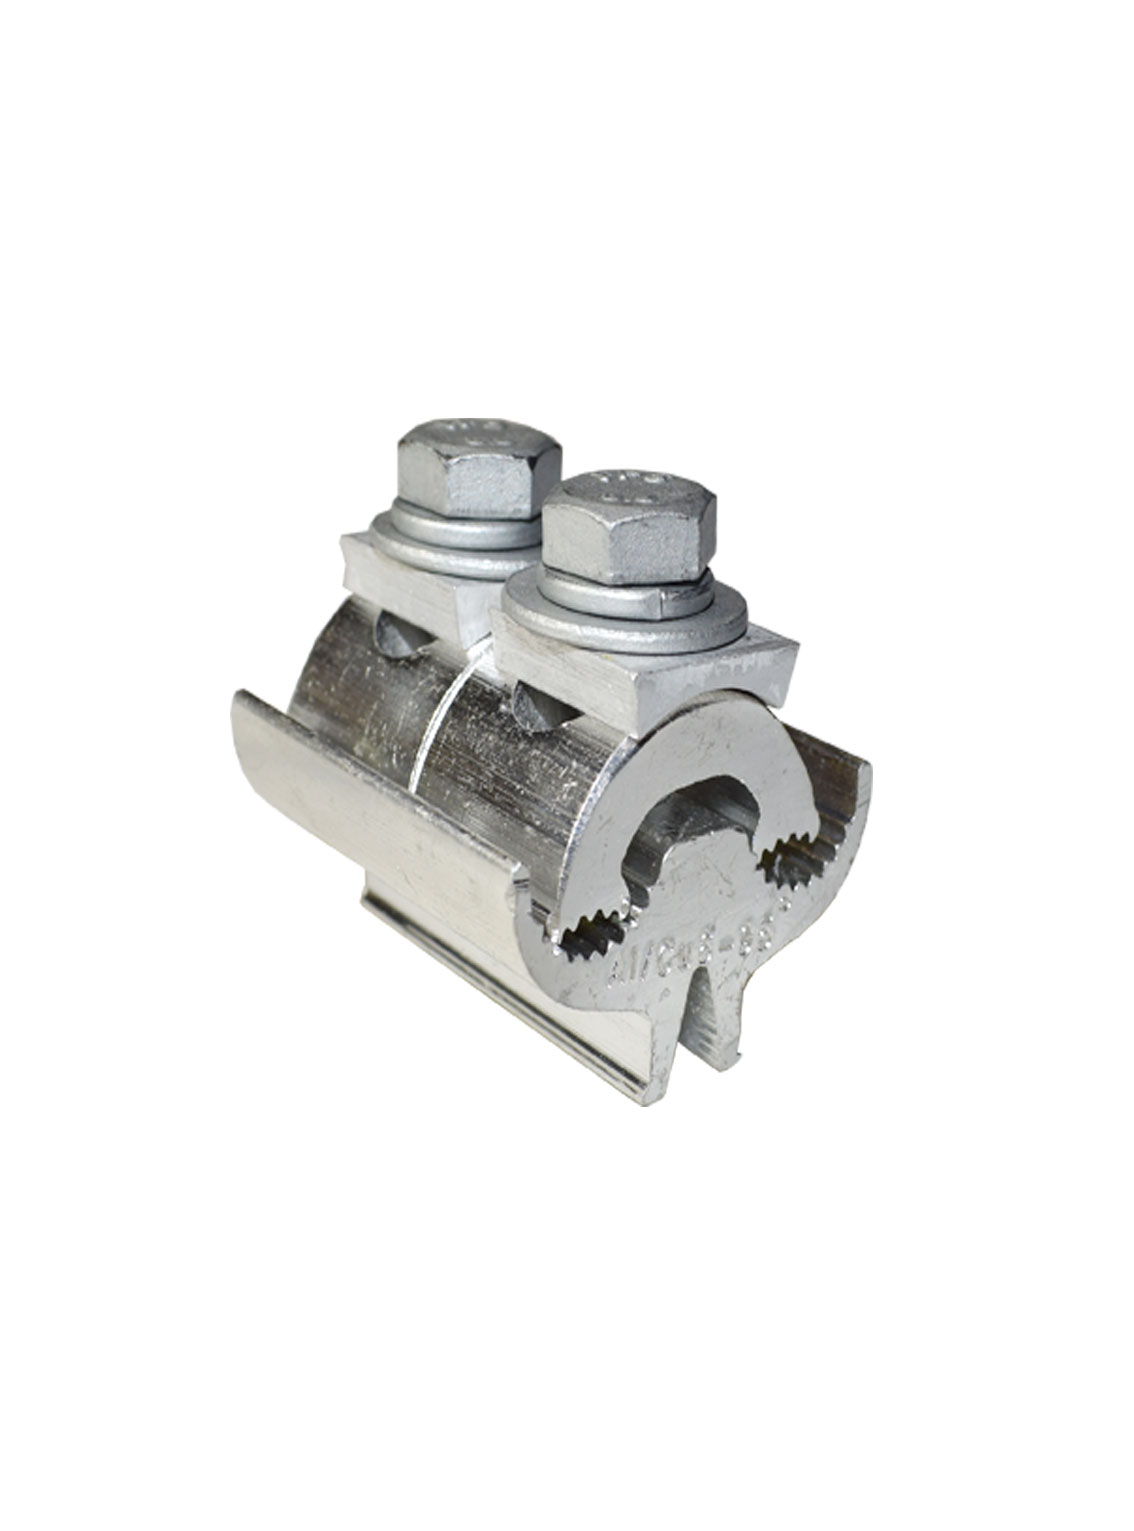 Parallel groove connector